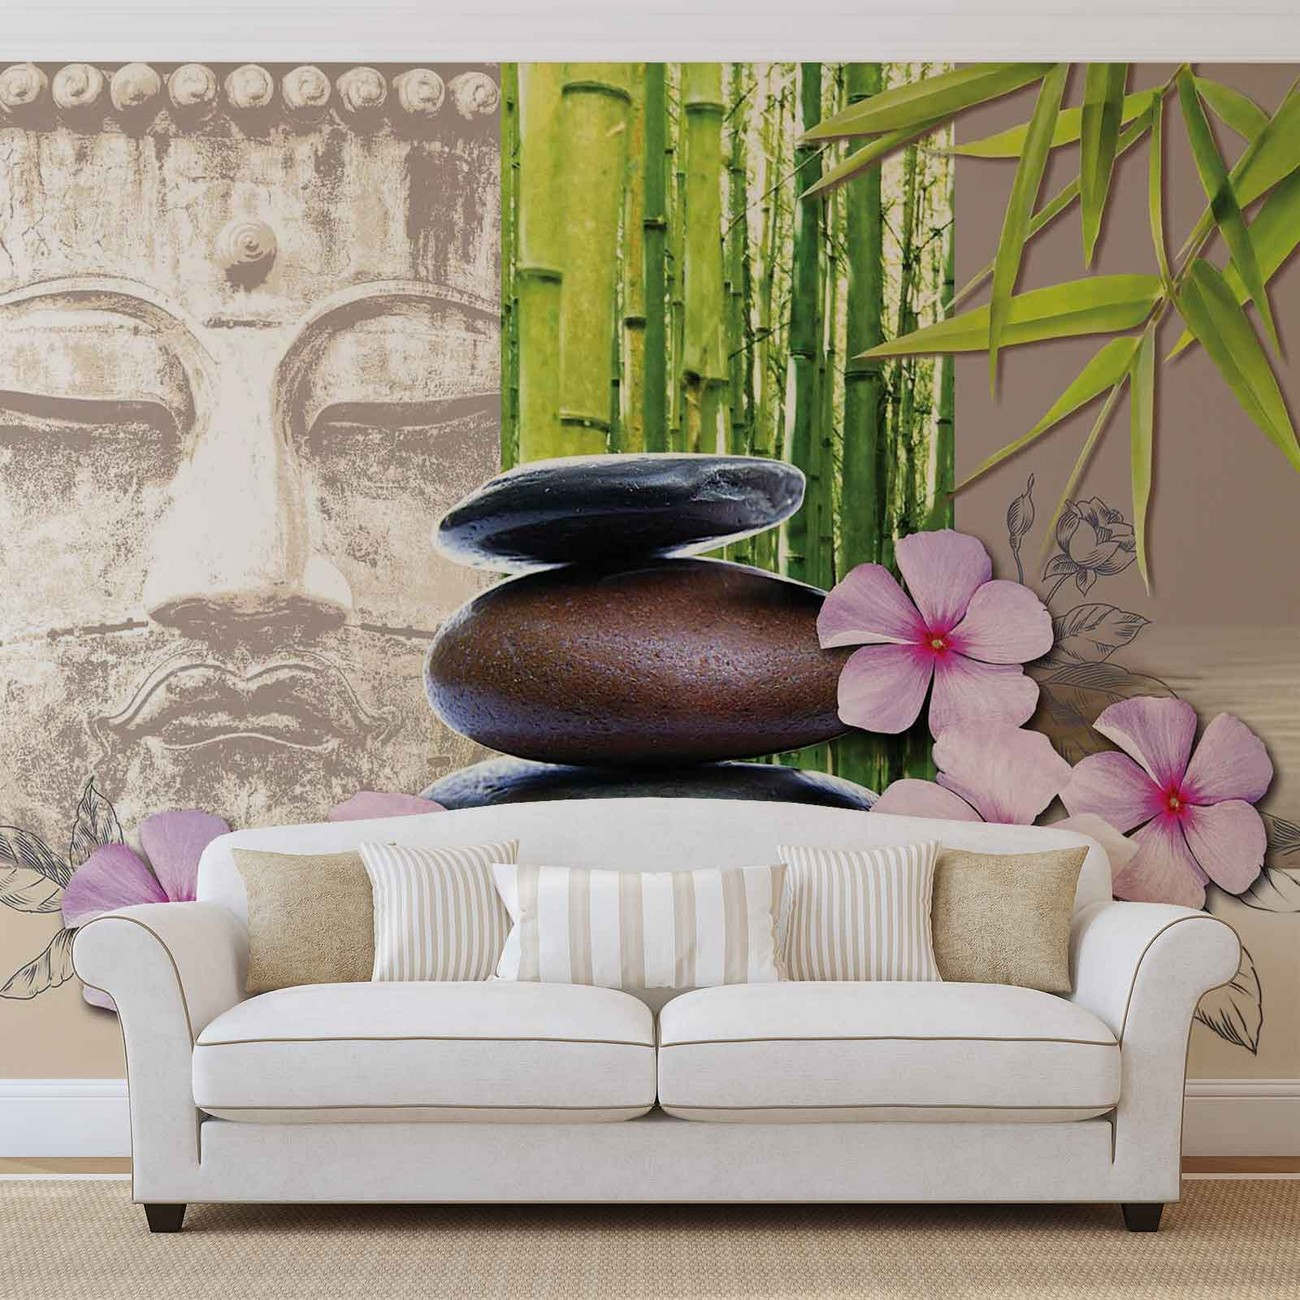 flowers with zen stones wall paper mural buy at europosters. Black Bedroom Furniture Sets. Home Design Ideas